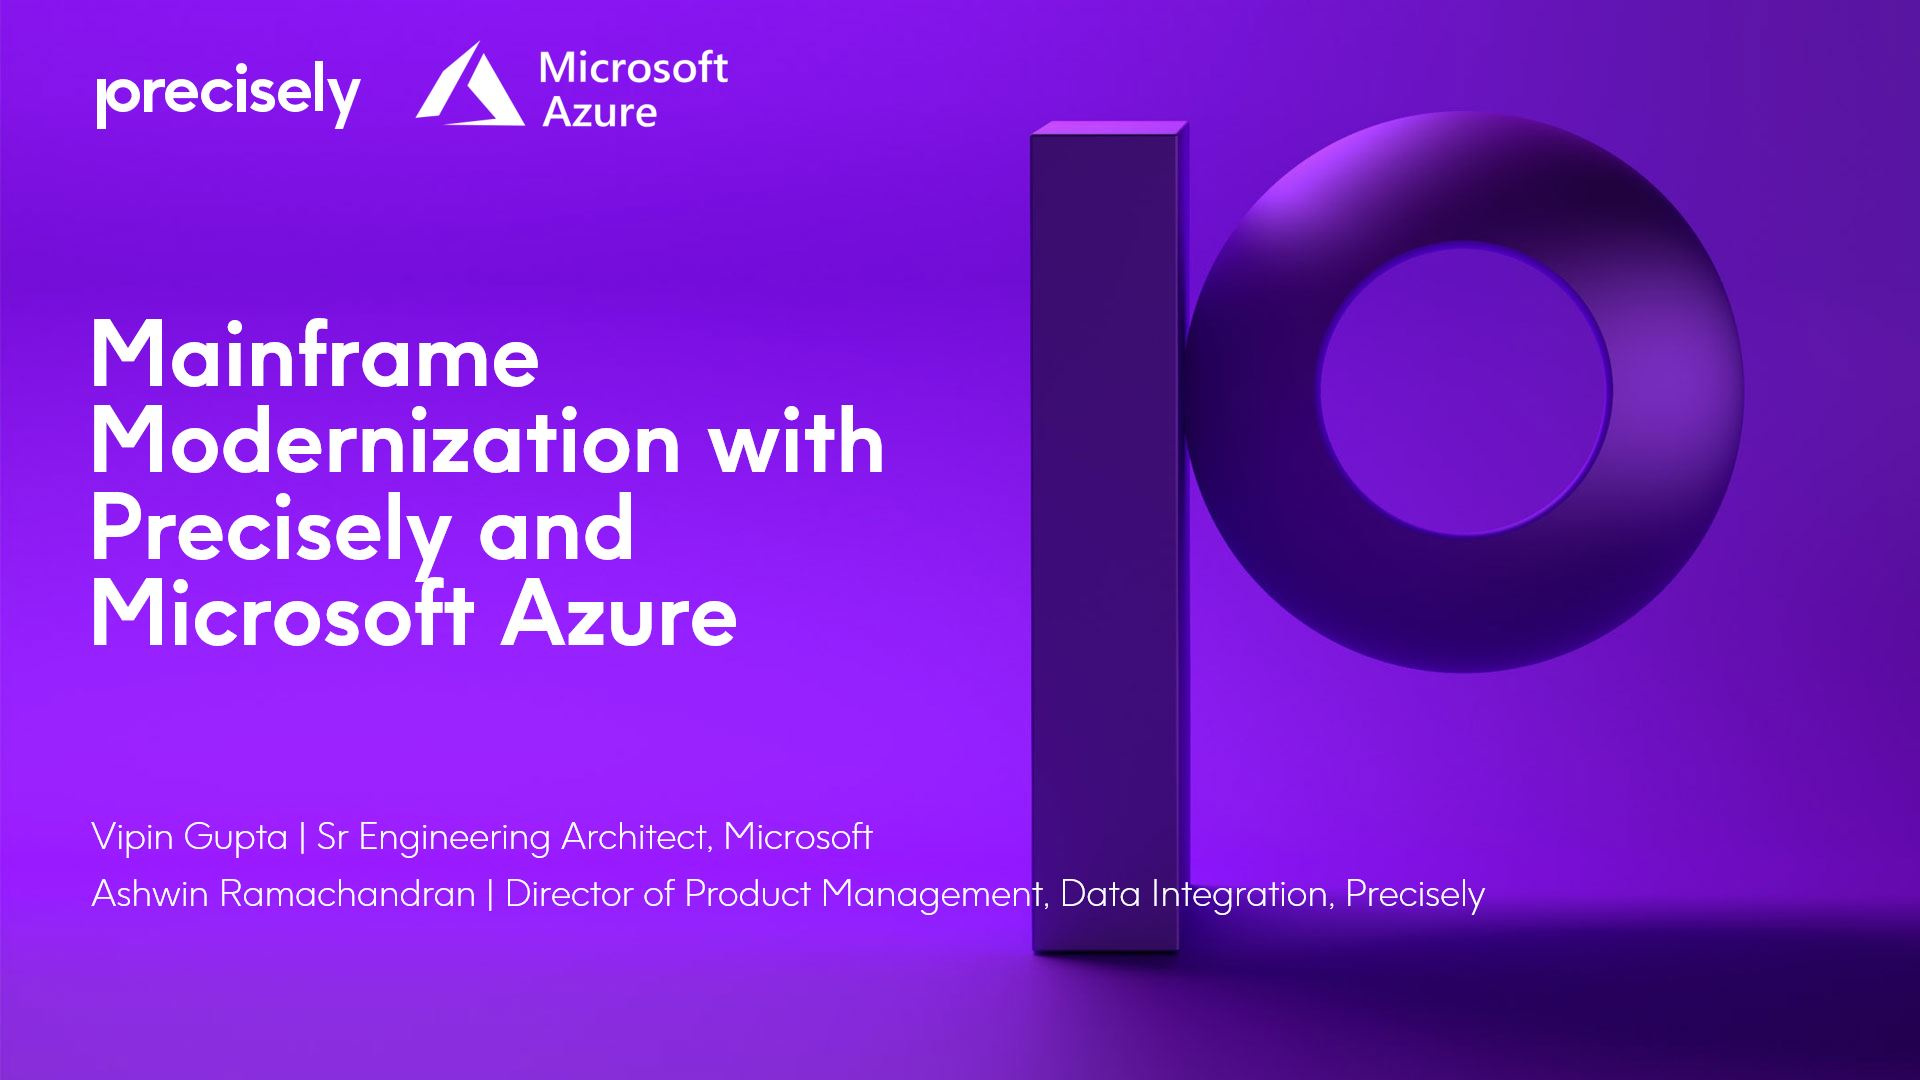 Mainframe Modernization with Precisely and Microsoft Azure